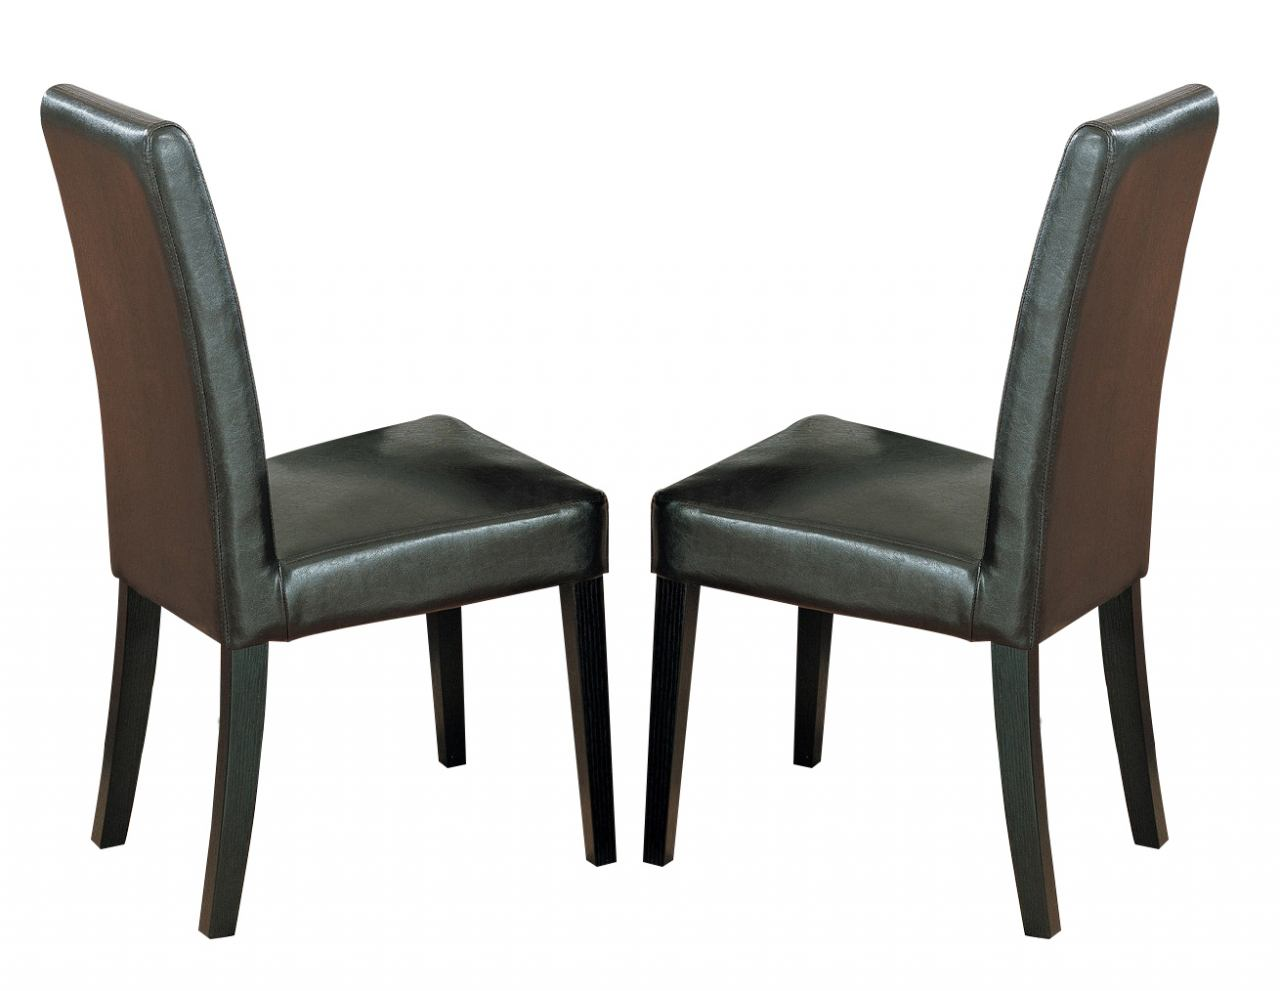 Global Furniture DG020 Dining Chair (Set of 2) in Brown DG020DC-BR